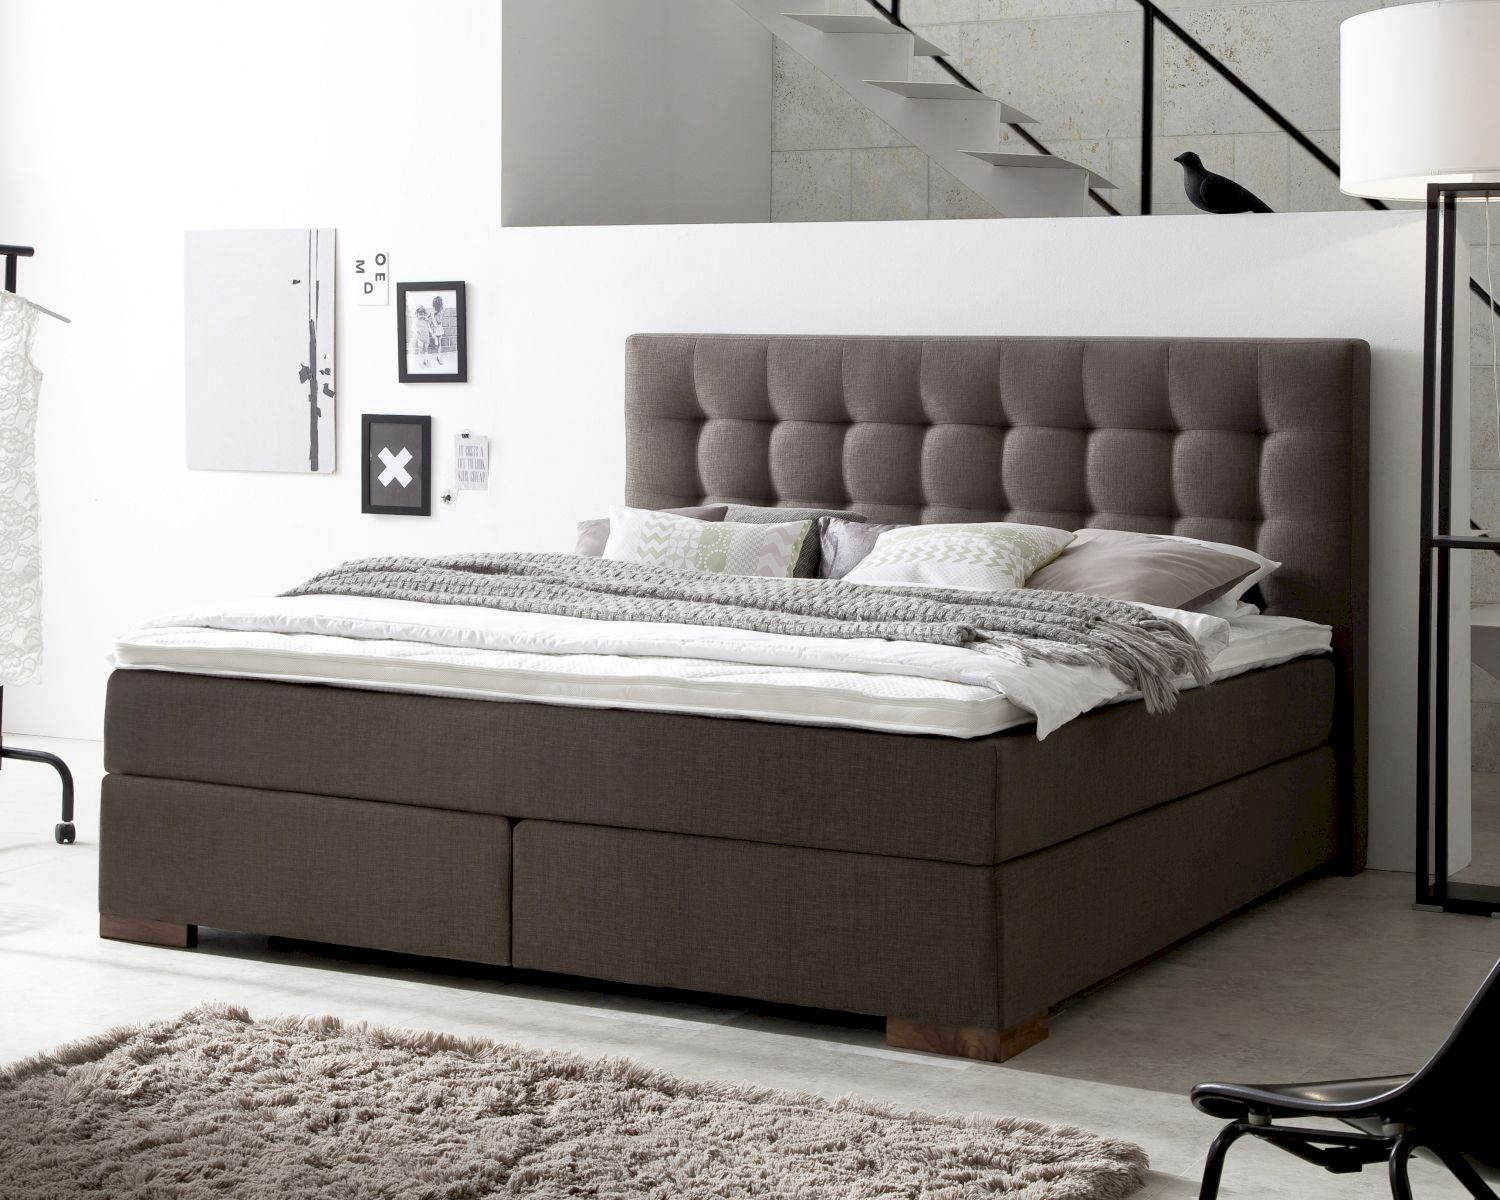 meise m bel boxspringbett areo bestellen. Black Bedroom Furniture Sets. Home Design Ideas